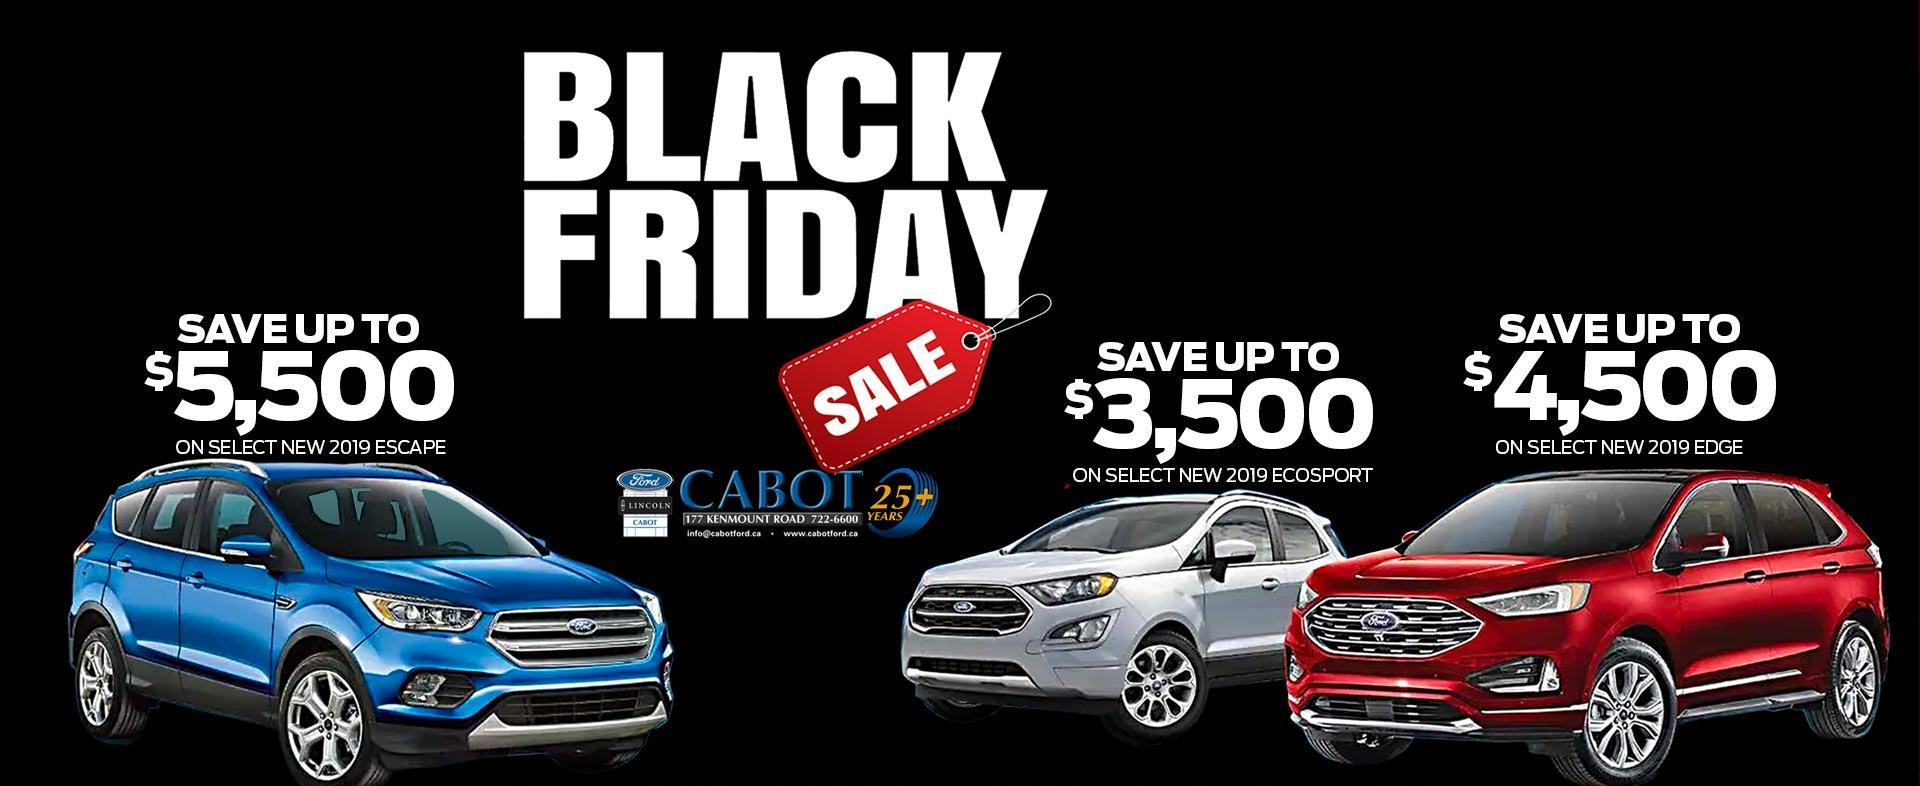 Incredible Black Friday deals on 2019 SUVs! Save big on select Escape, Edge, and EcoSport models, only until Nov 27!